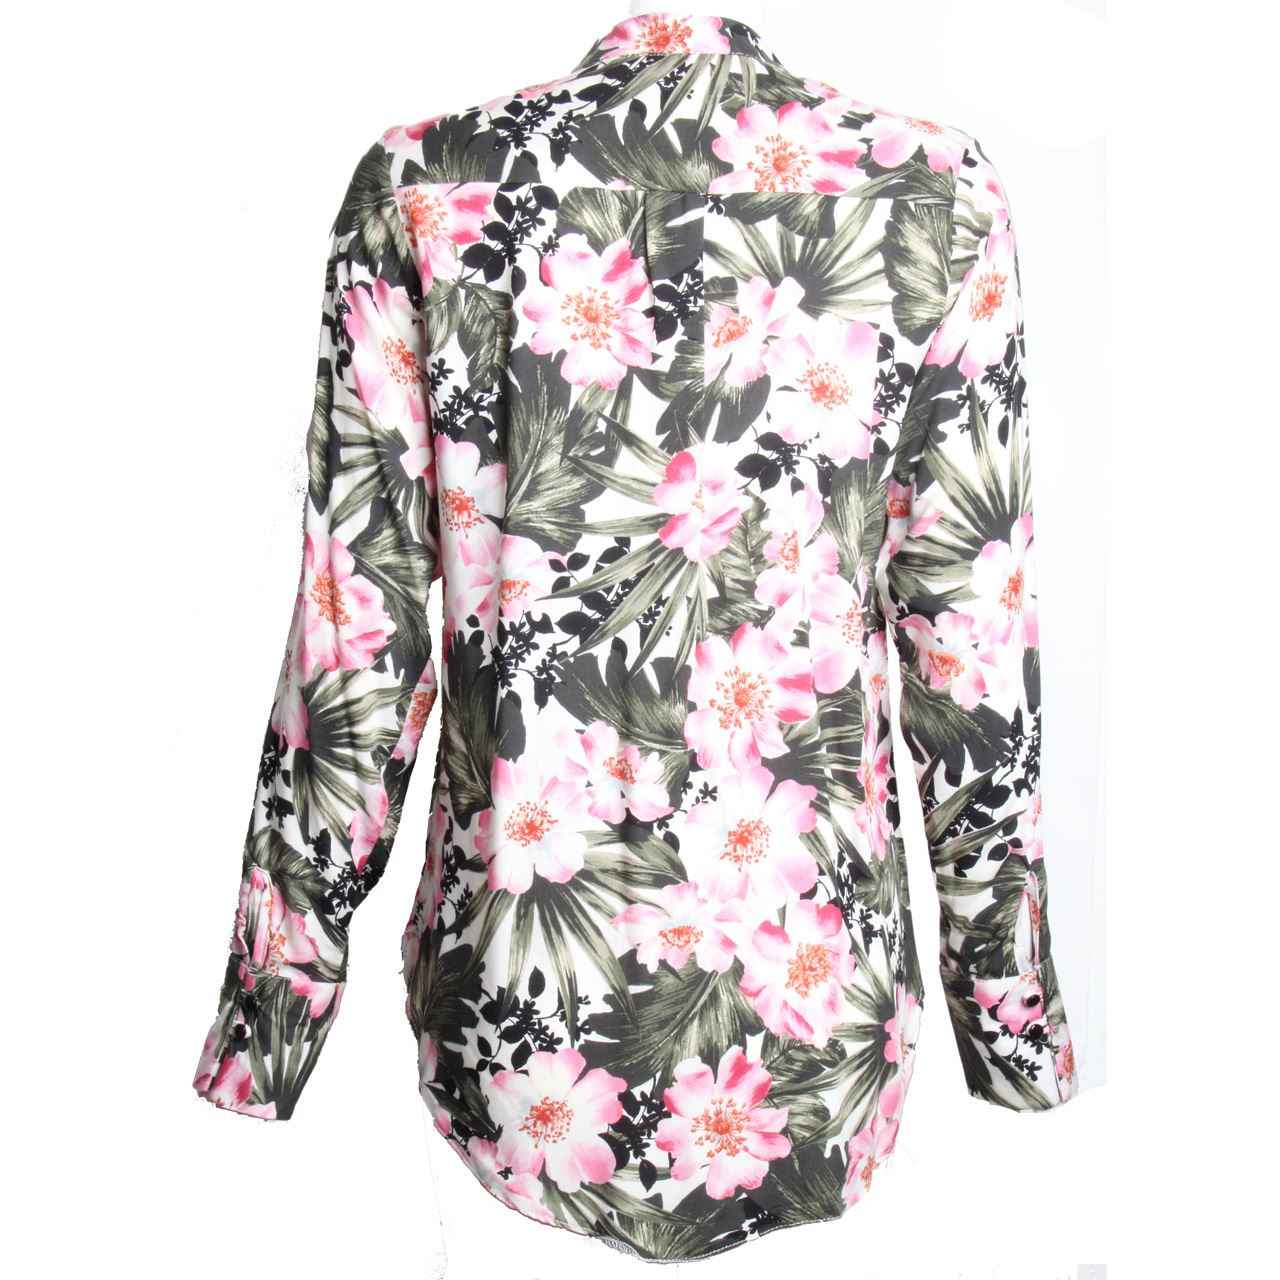 Womens ladies long sleeve button up blouse floral print for Floral print button up shirt